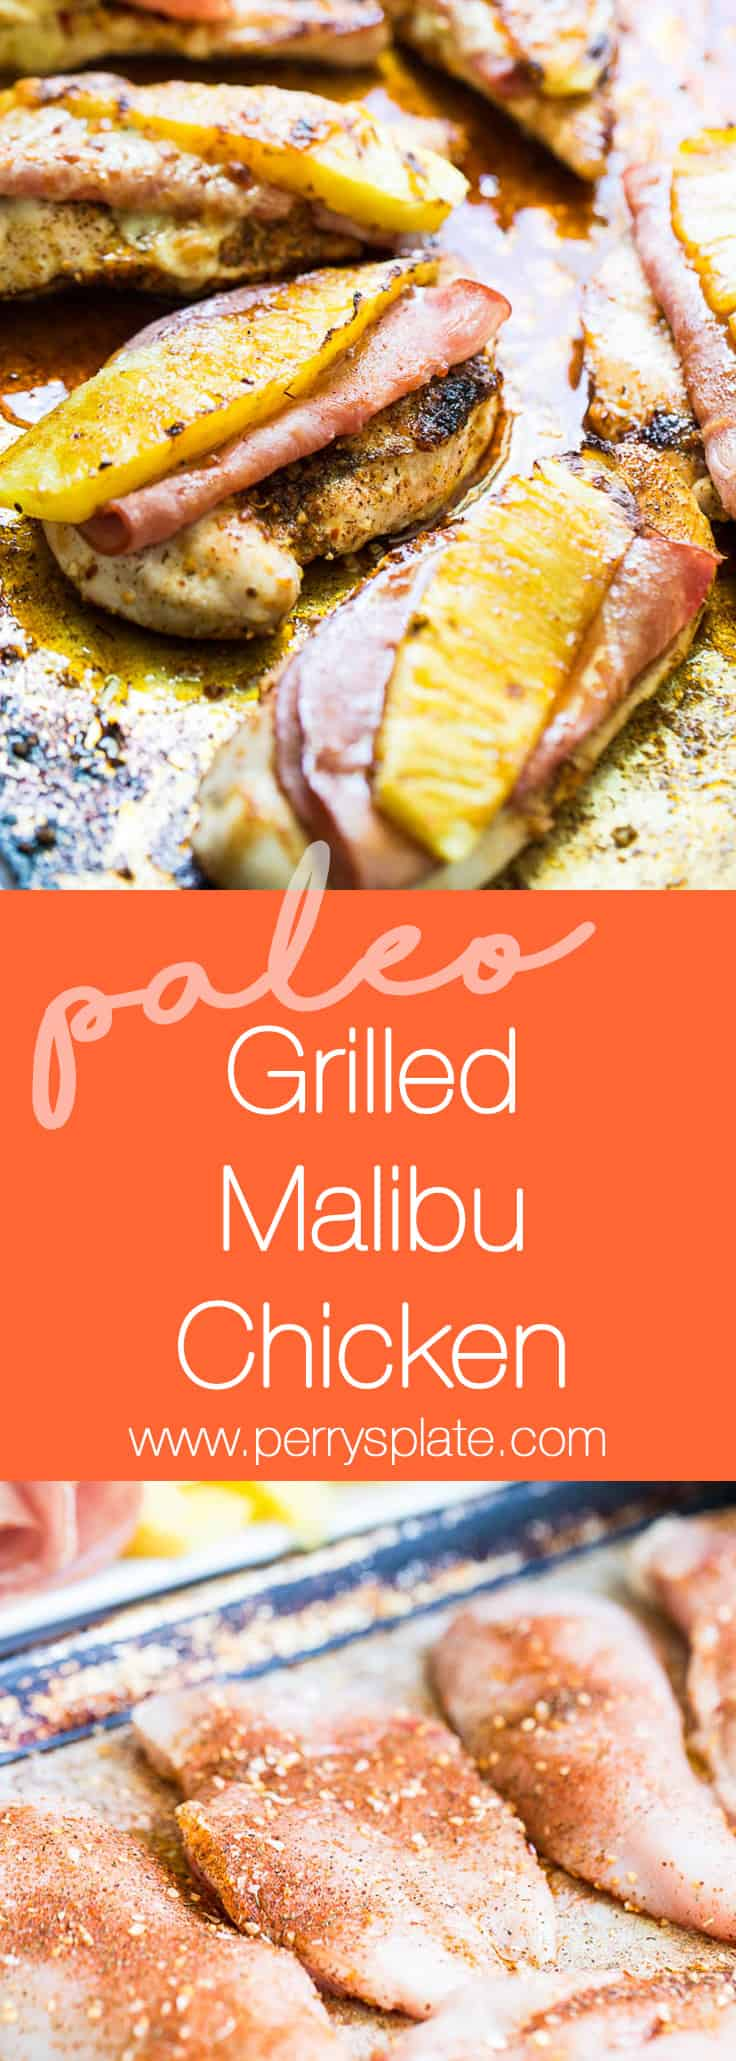 Grilled Malibu Chicken is my favorite thing to make during the summer -- especially if we have guests! Everyone loves it! | grilled chicken recipes | pineapple recipes | paleo recipes | perrysplate.com